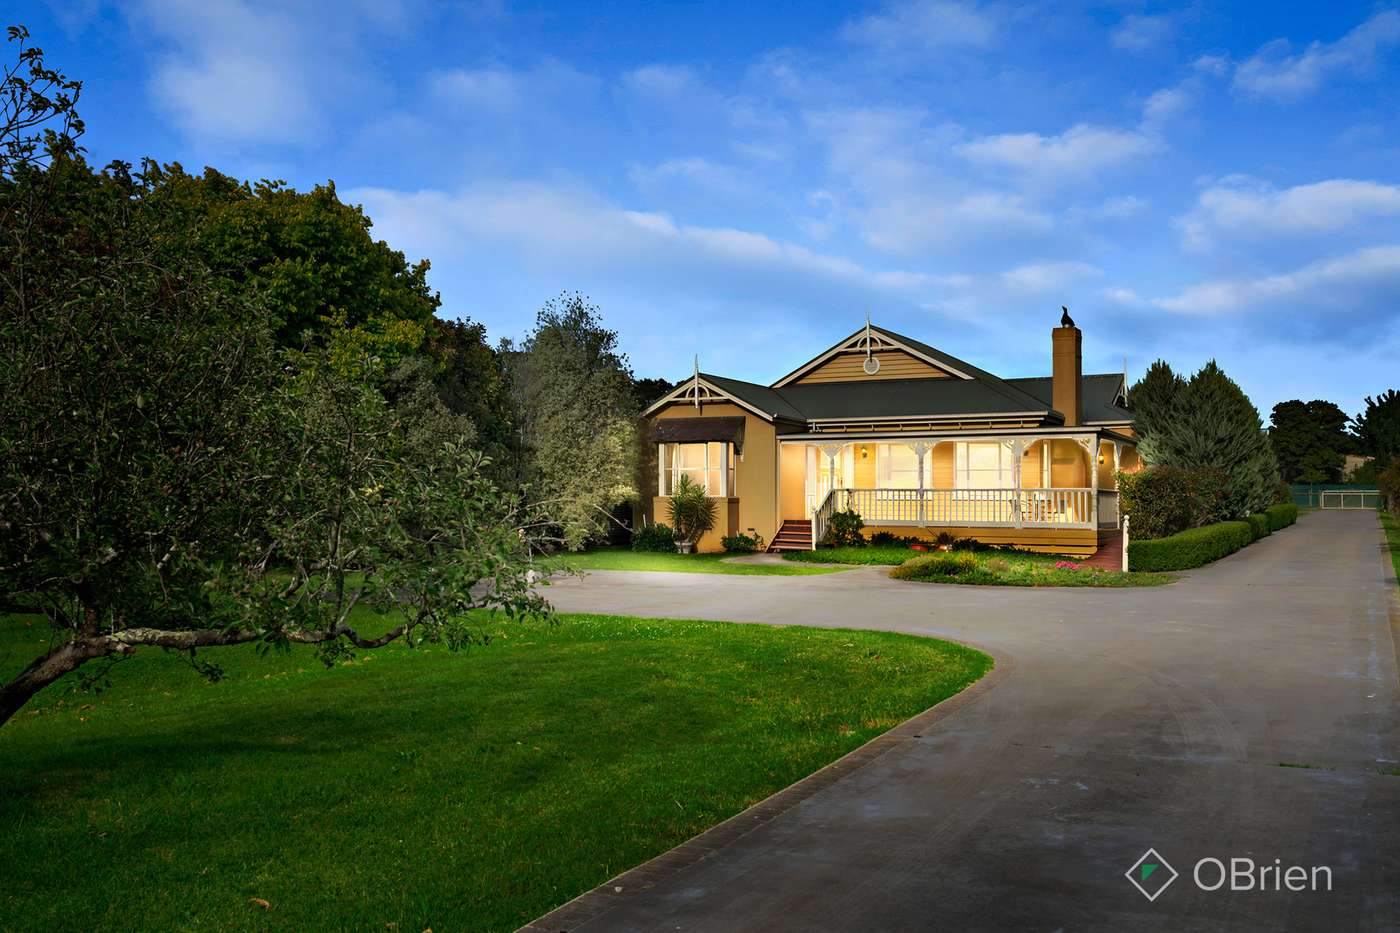 Main view of Homely house listing, 2 Pottery Road, Somerville, VIC 3912